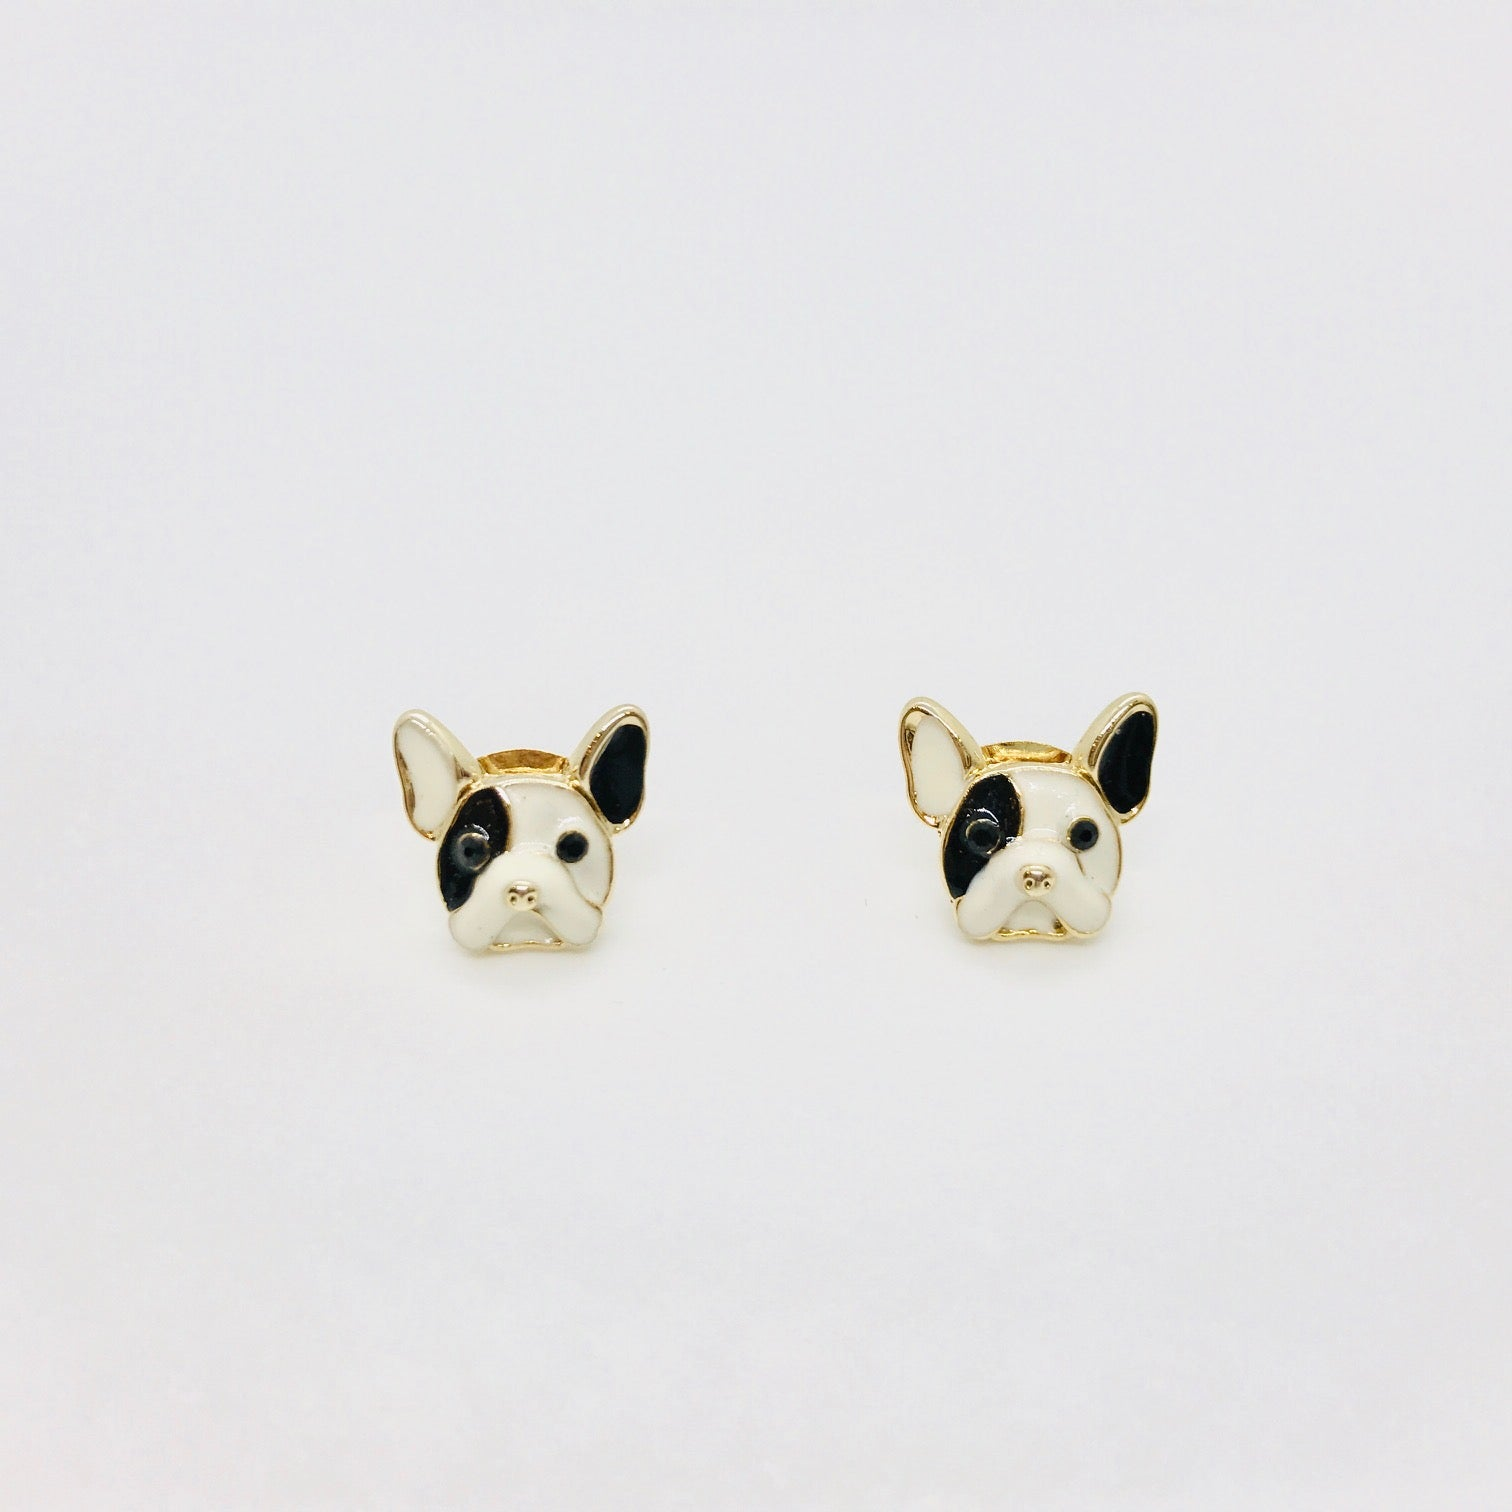 Frankie French Bulldog Earrings